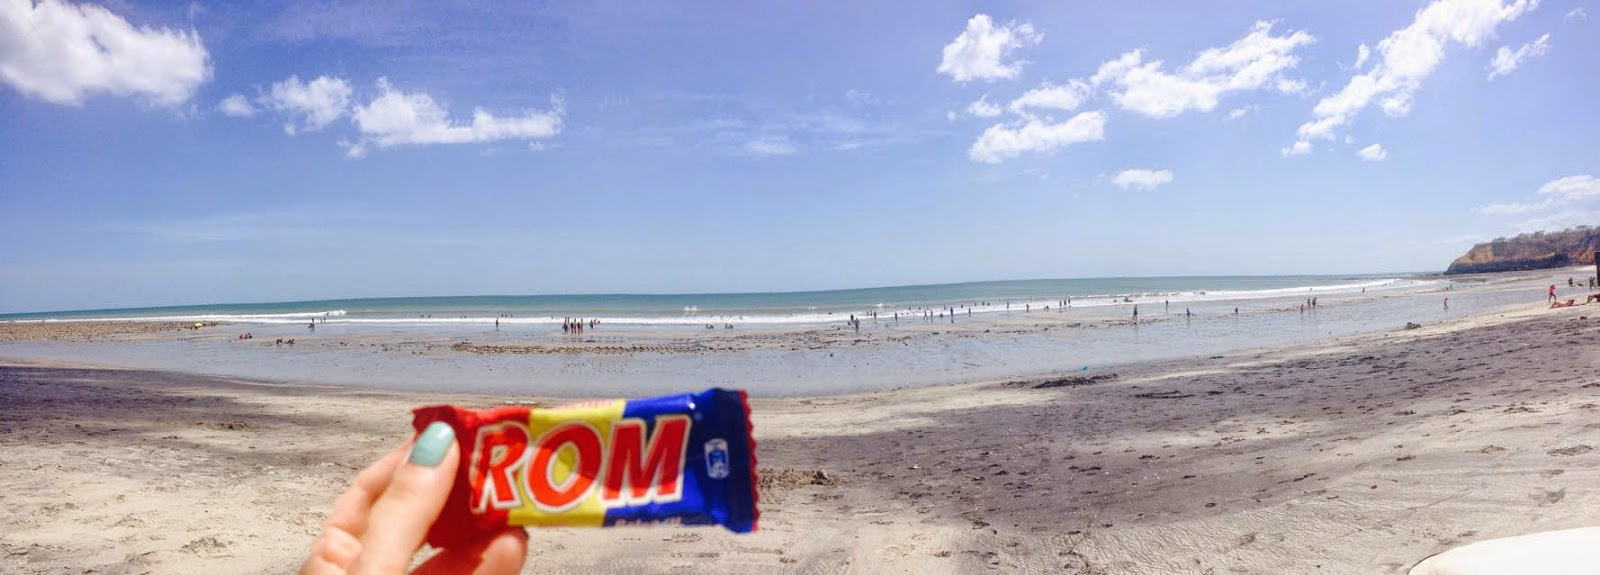 Nothing better than a Romanian chocolate bar by the beach